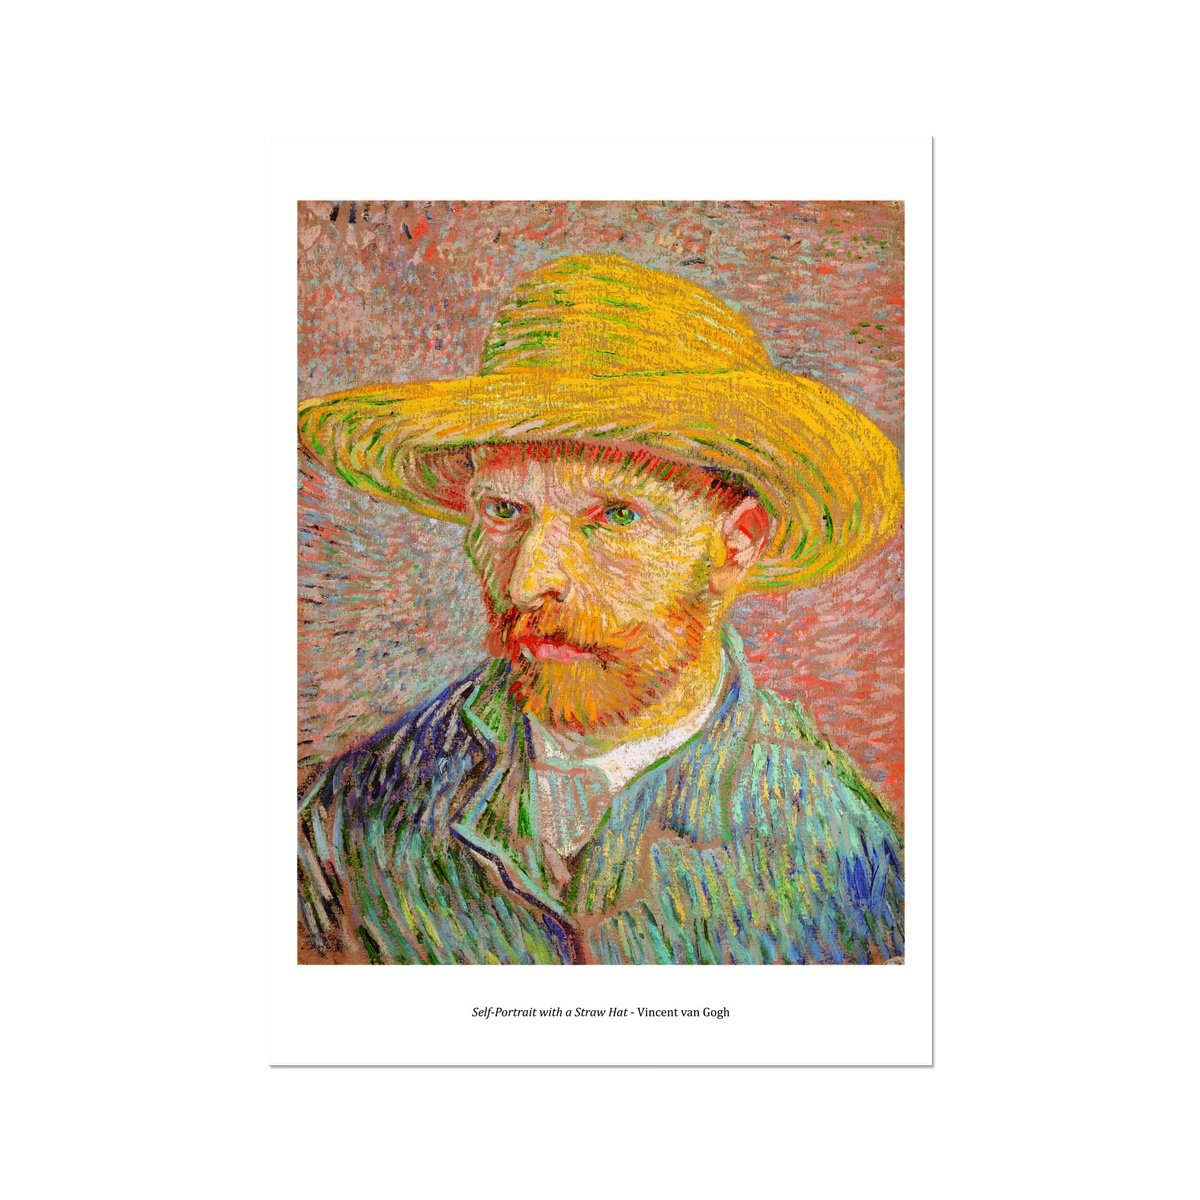 Self-Portrait with a Straw Hat 1887 Vincent van Gogh - Framed Poster